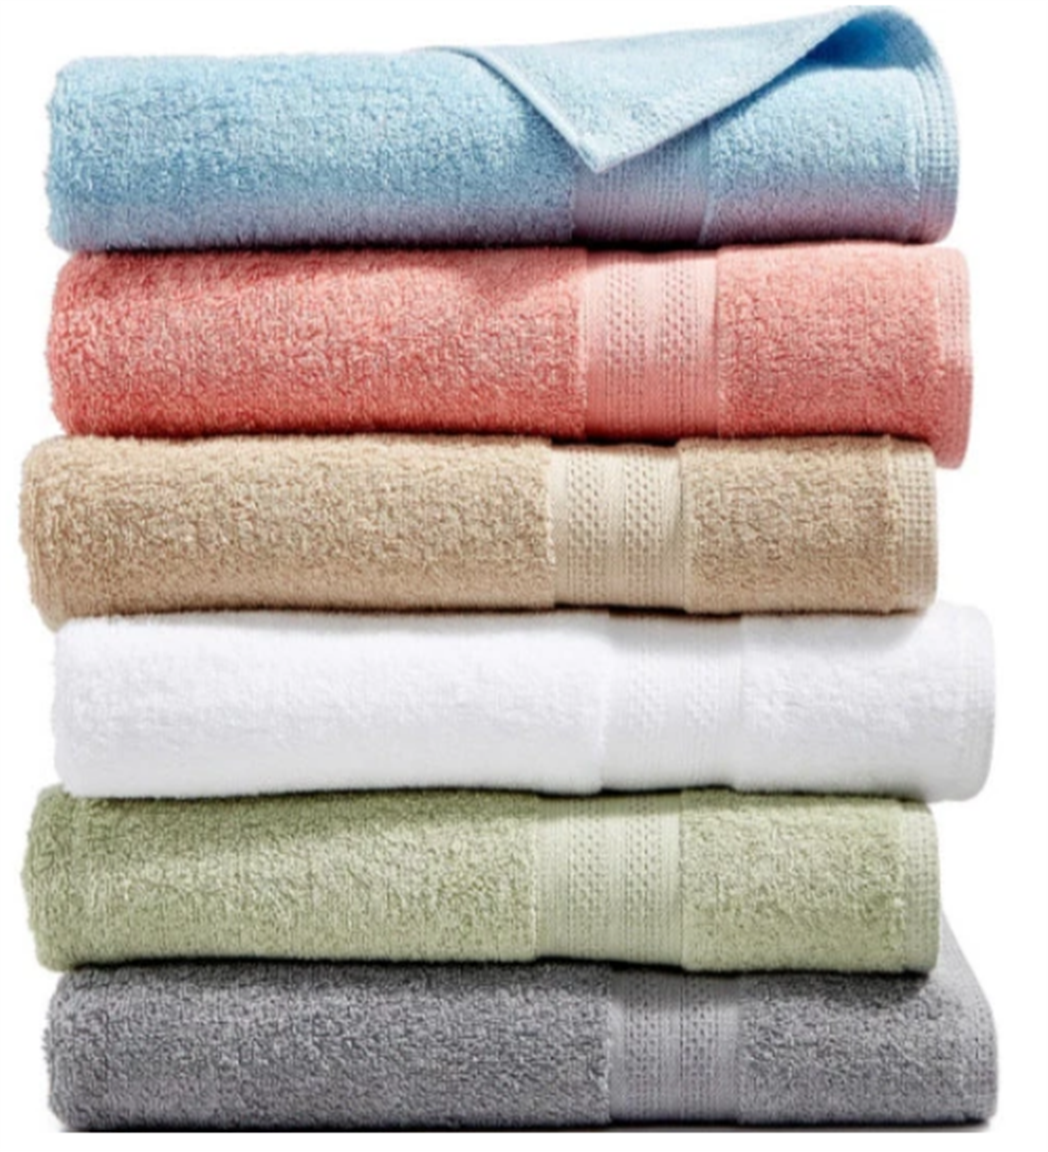 Macys.com – Soft Spun Cotton Bath Towels Only $2.99, Reg $14.00 + Free Store Pickup!